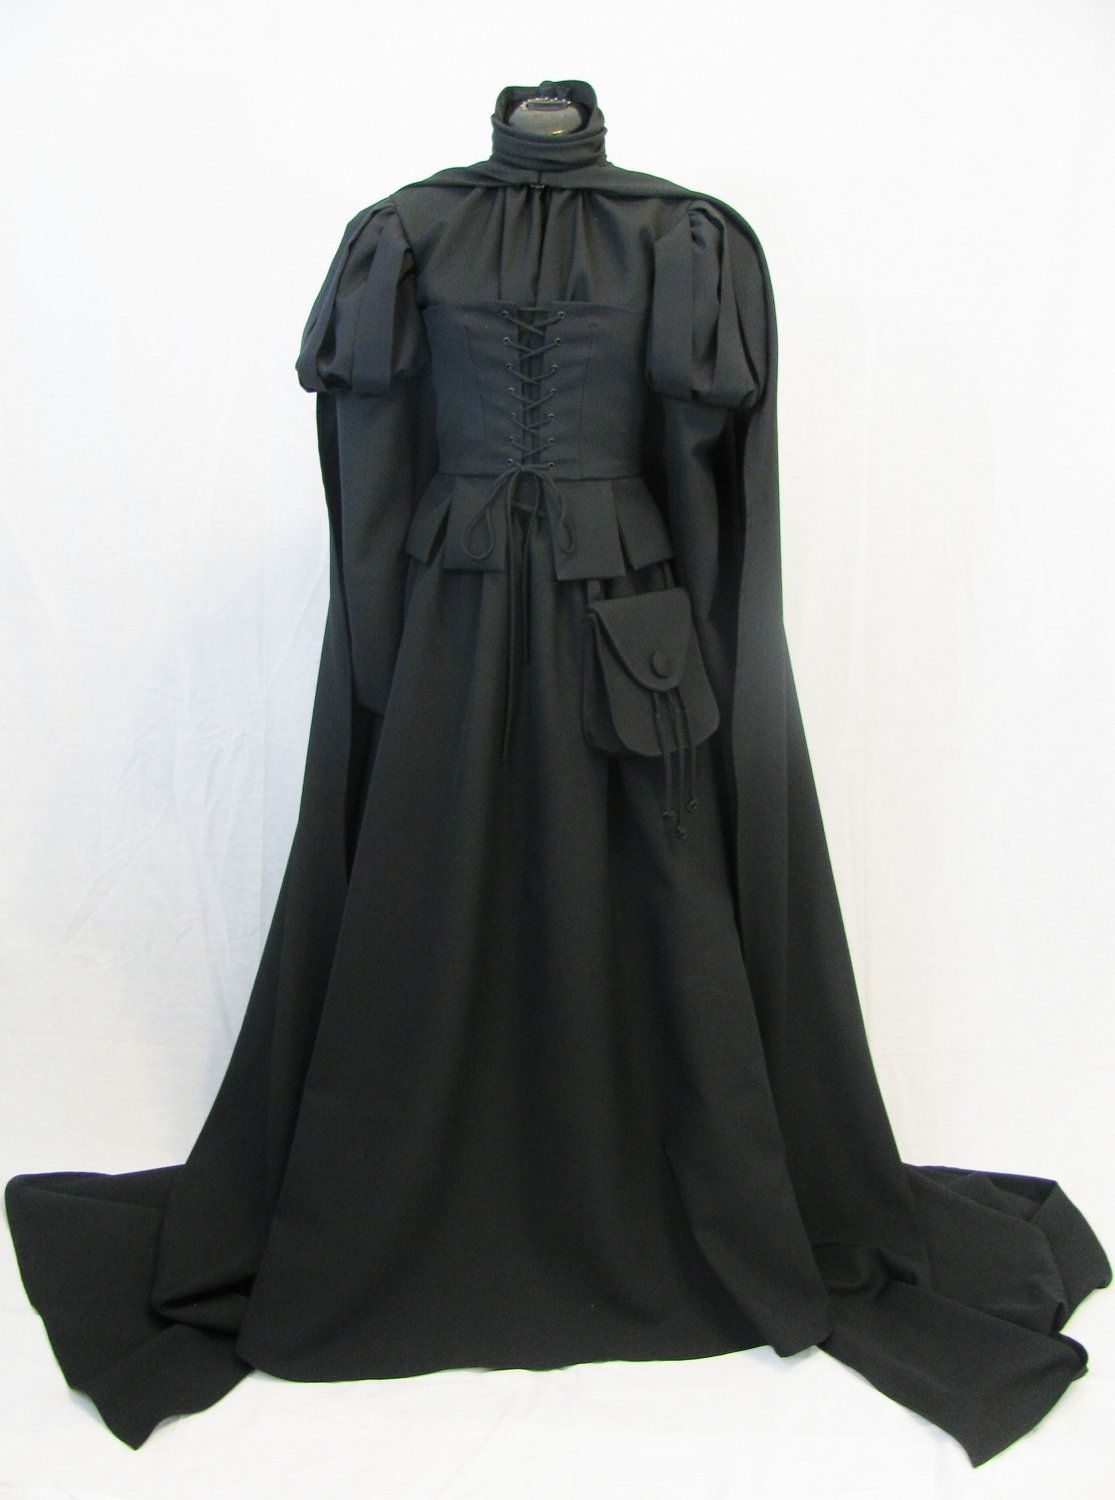 Wicked Witch of the West Custom Costume | Wicked, Witches and Costumes